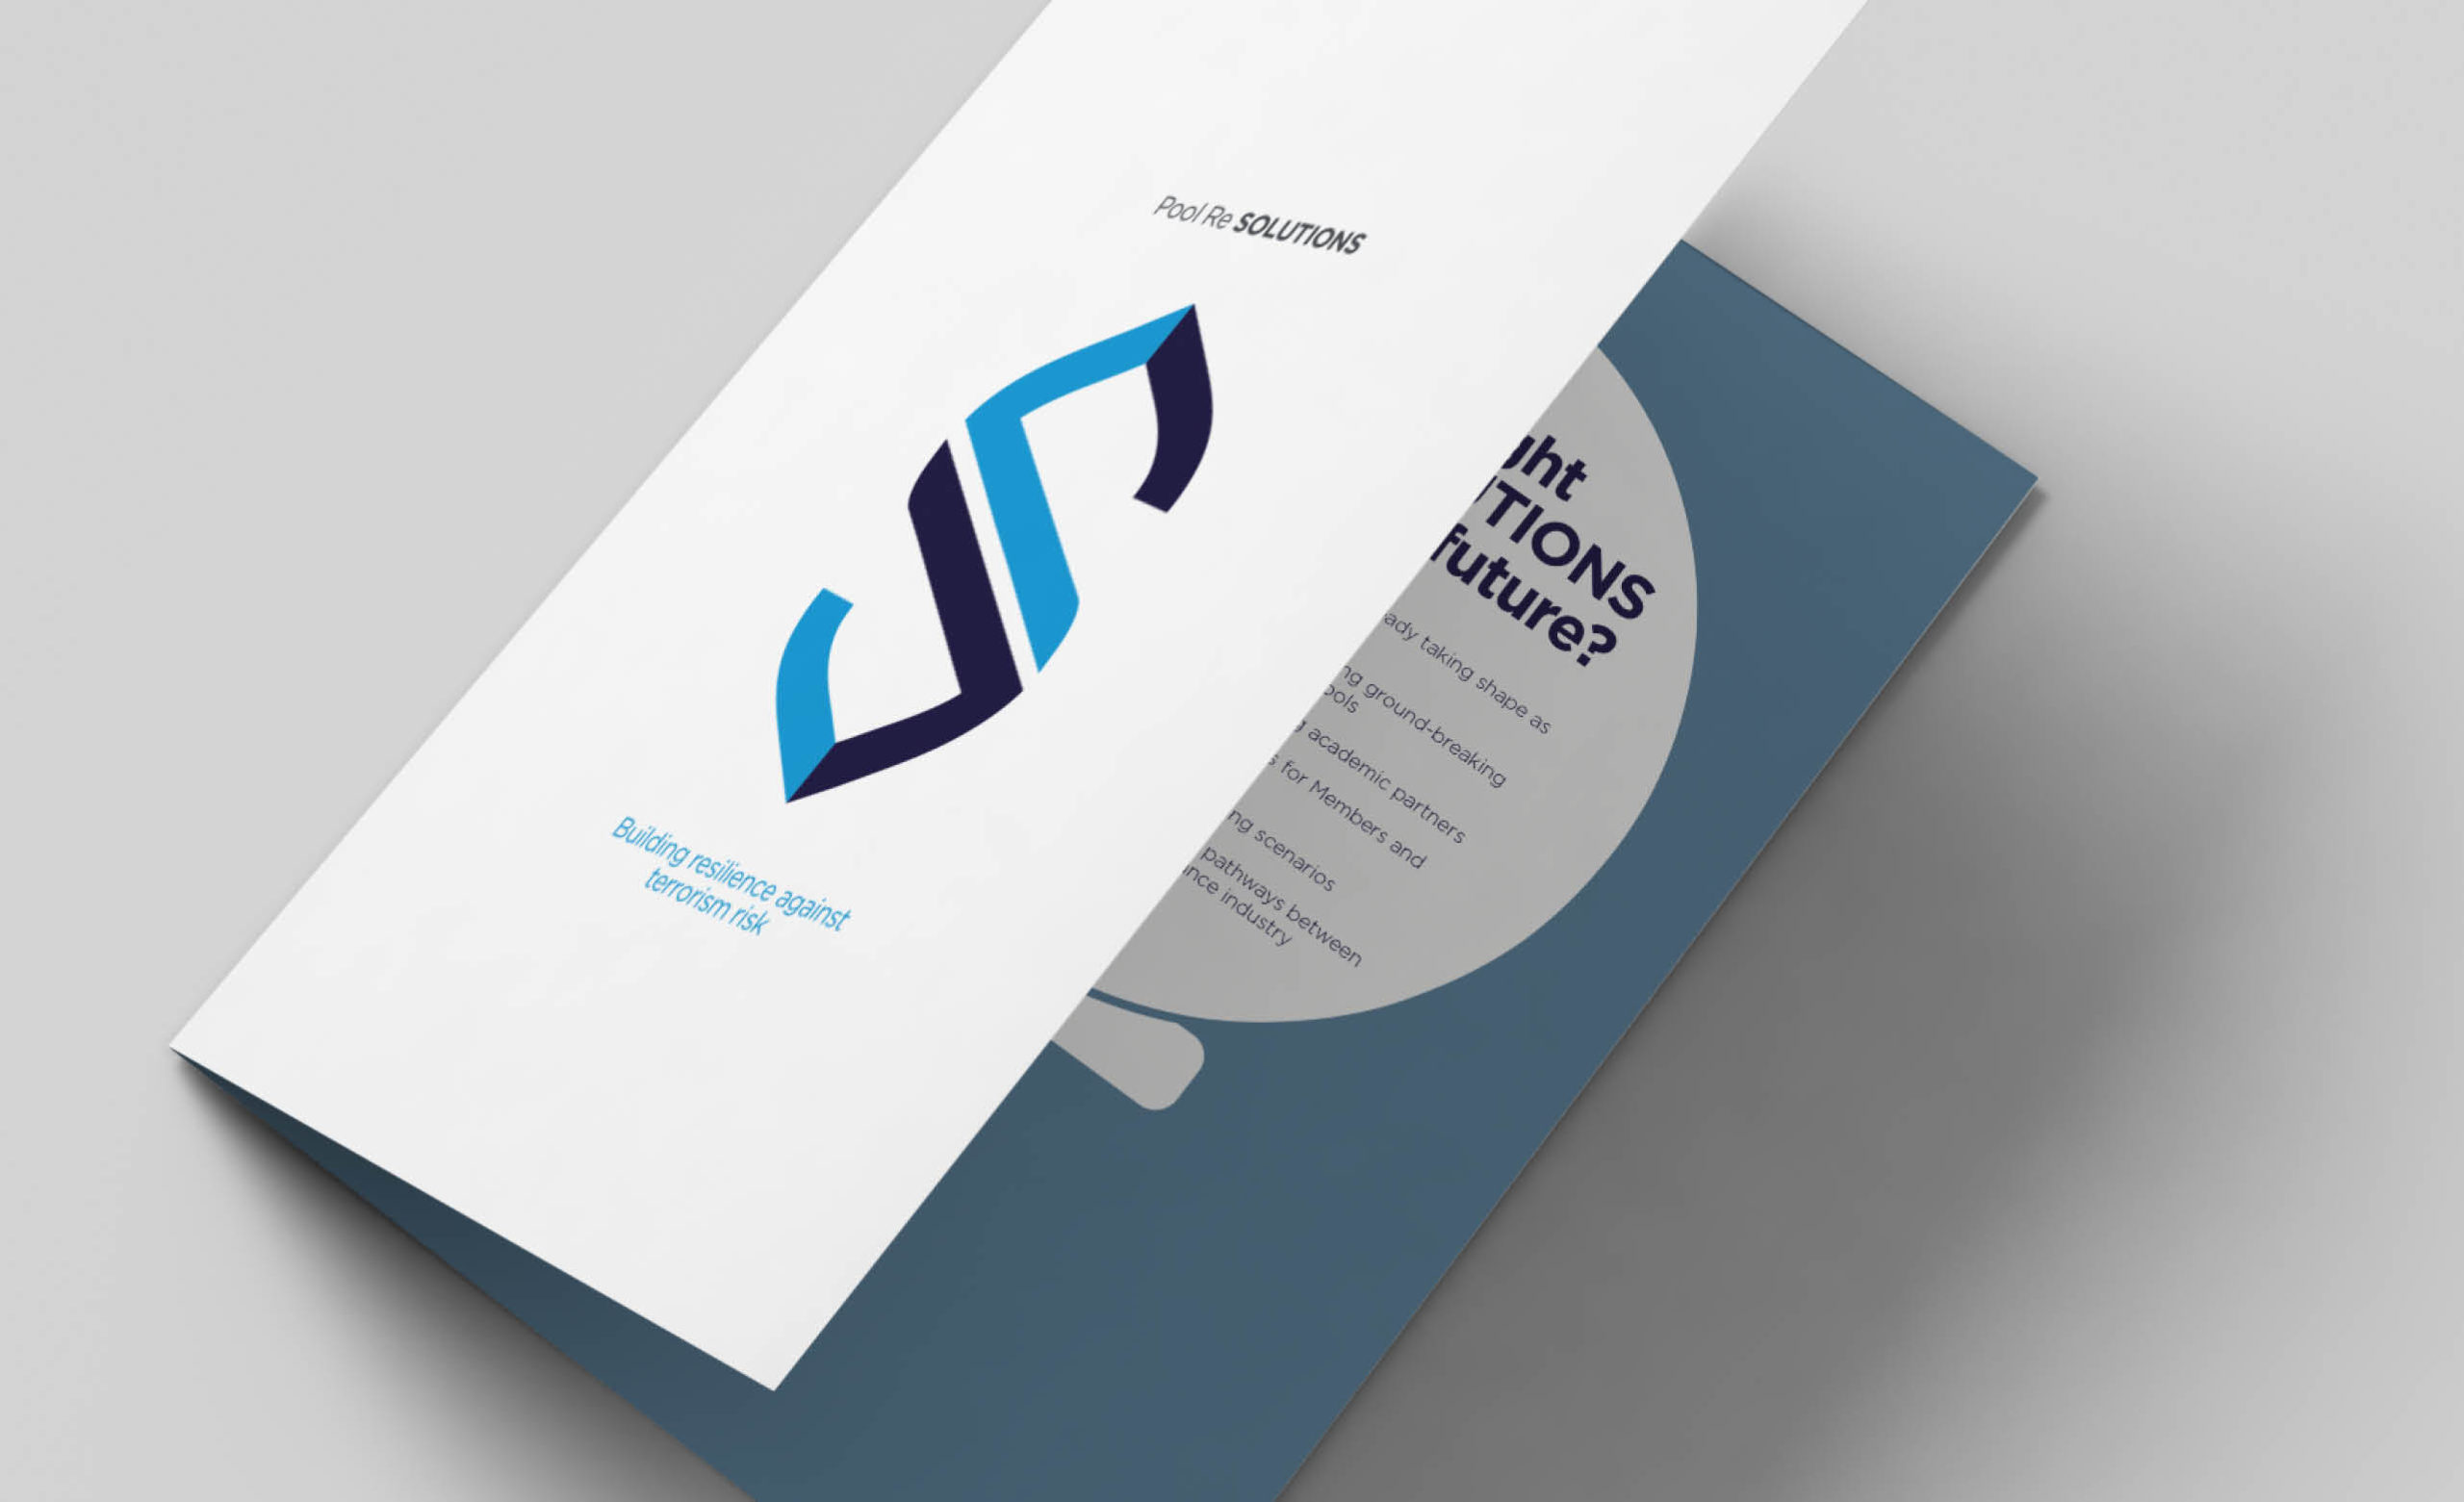 Pool Re Solutions marketing brochure, insurance marketing and design, information design